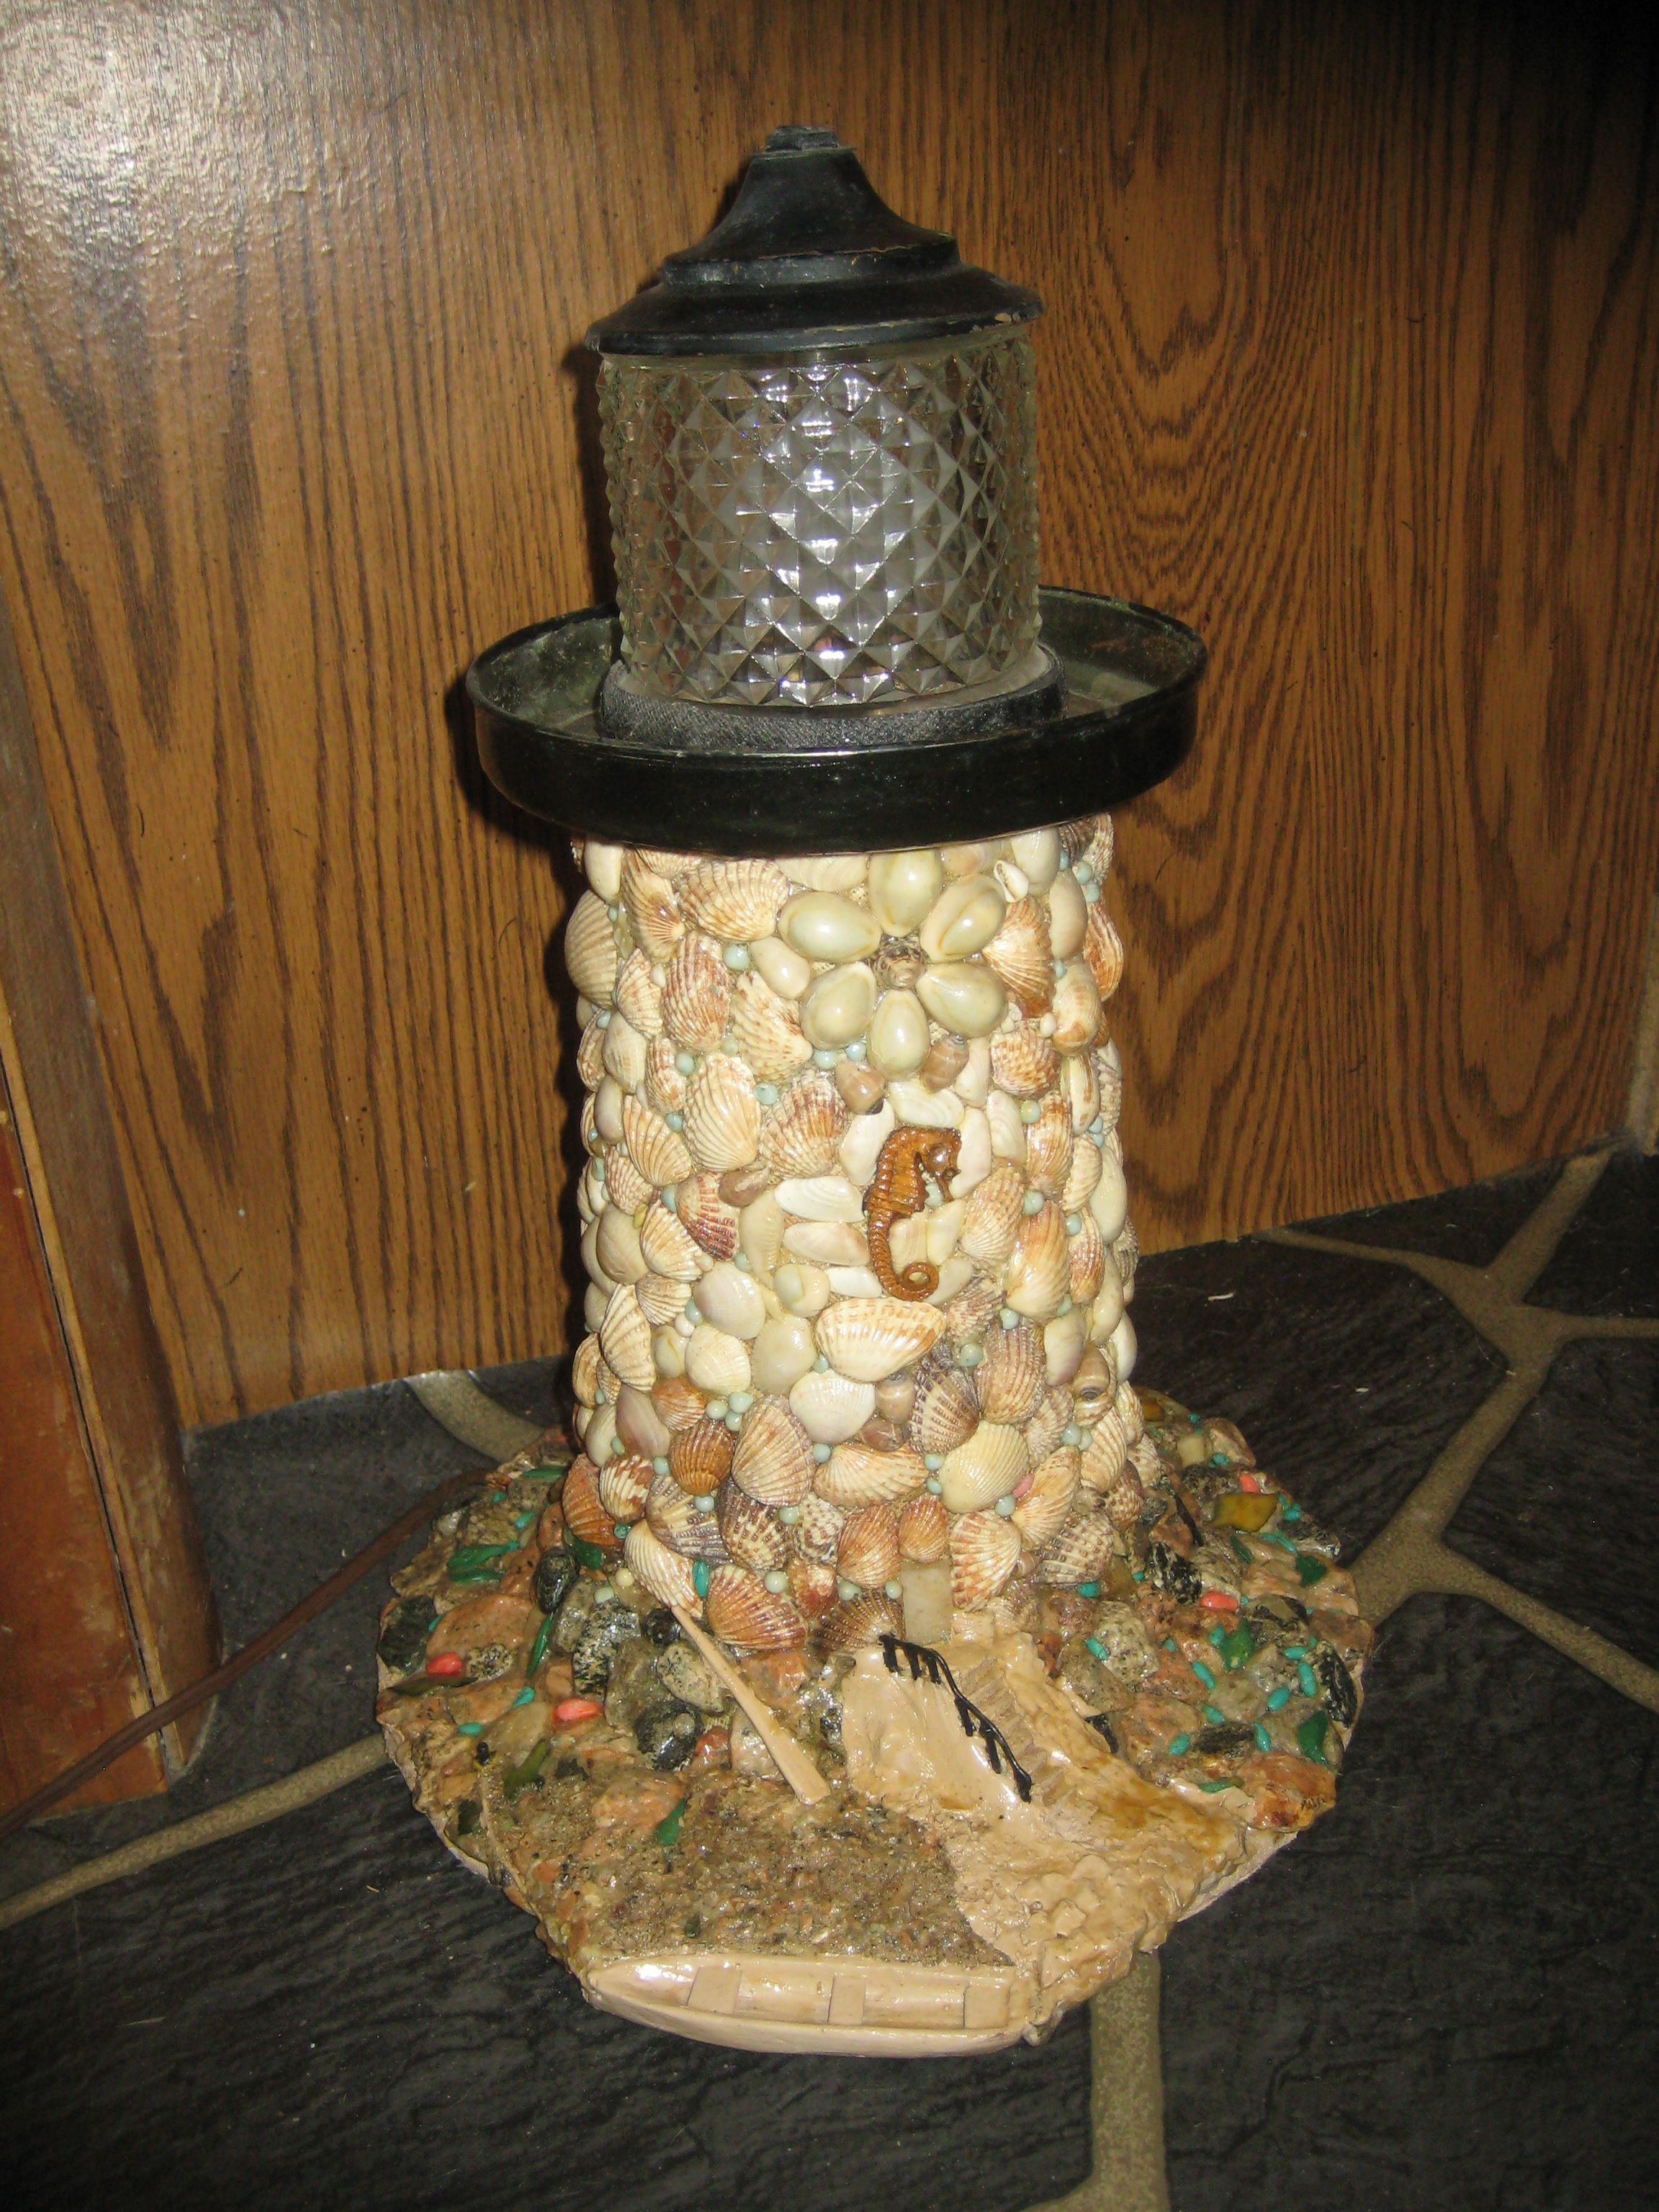 Vintage hand crafted stone and shell lighthouse lamp for sale on vintage hand crafted stone and shell lighthouse lamp for sale on craigslist sciox Image collections